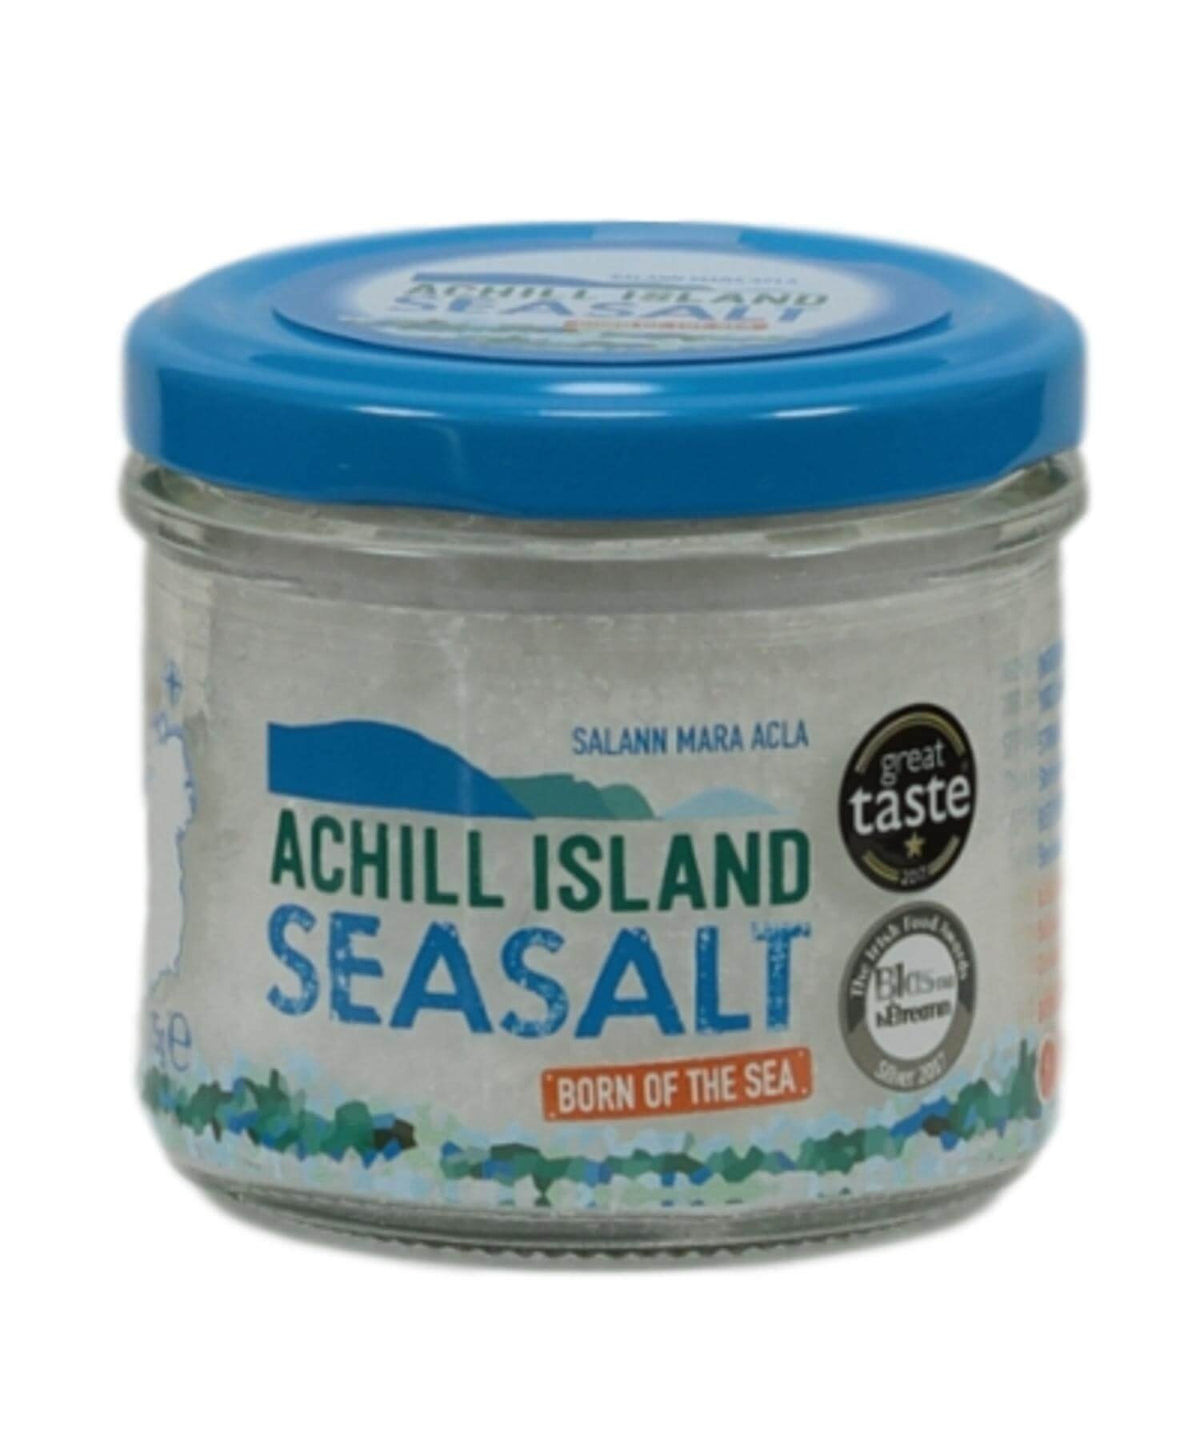 Achill Island Pure Sea Salt - [Achill Island Seasalt] - Food Gifts - Irish Gifts